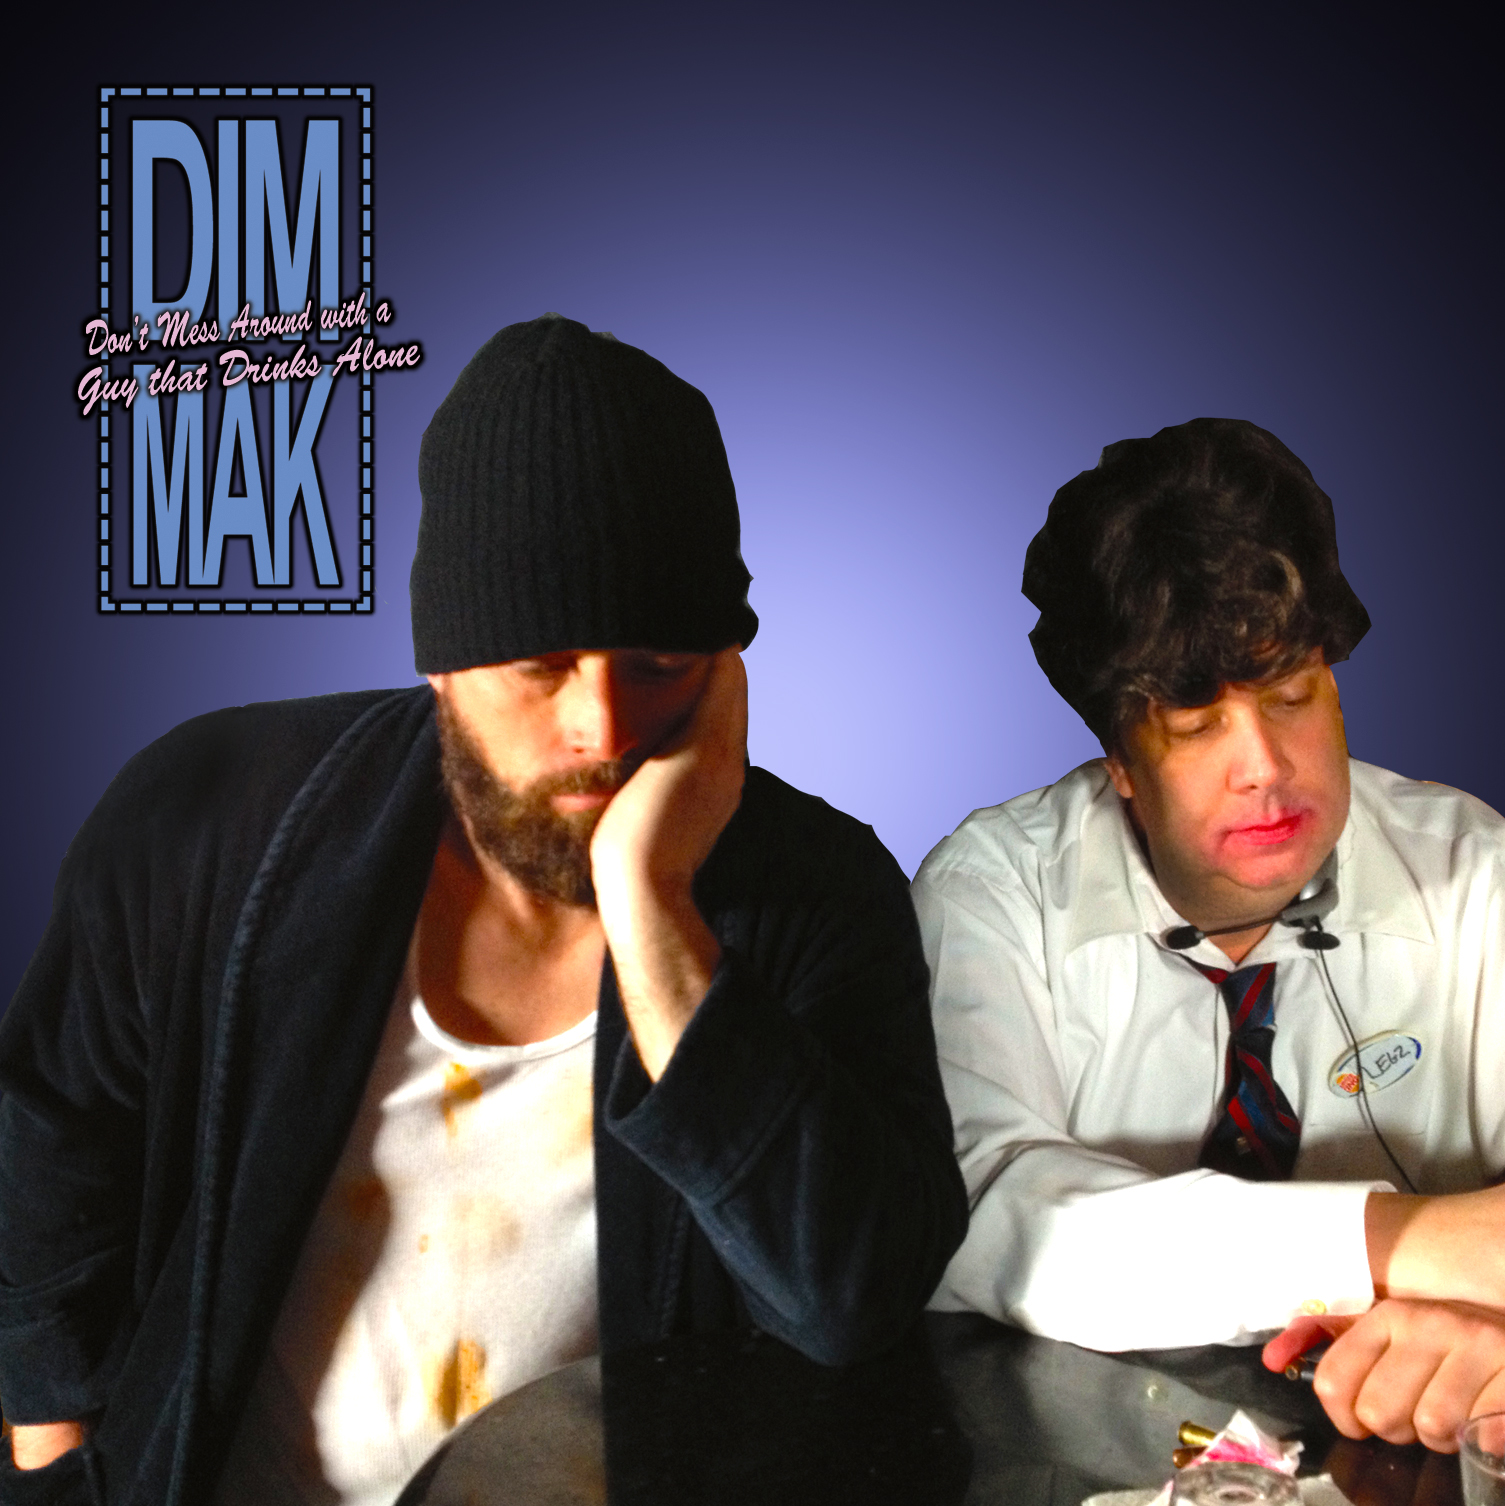 Don't Mess Around With A Guy That Drinks Alone by Project Dim Mak single cover